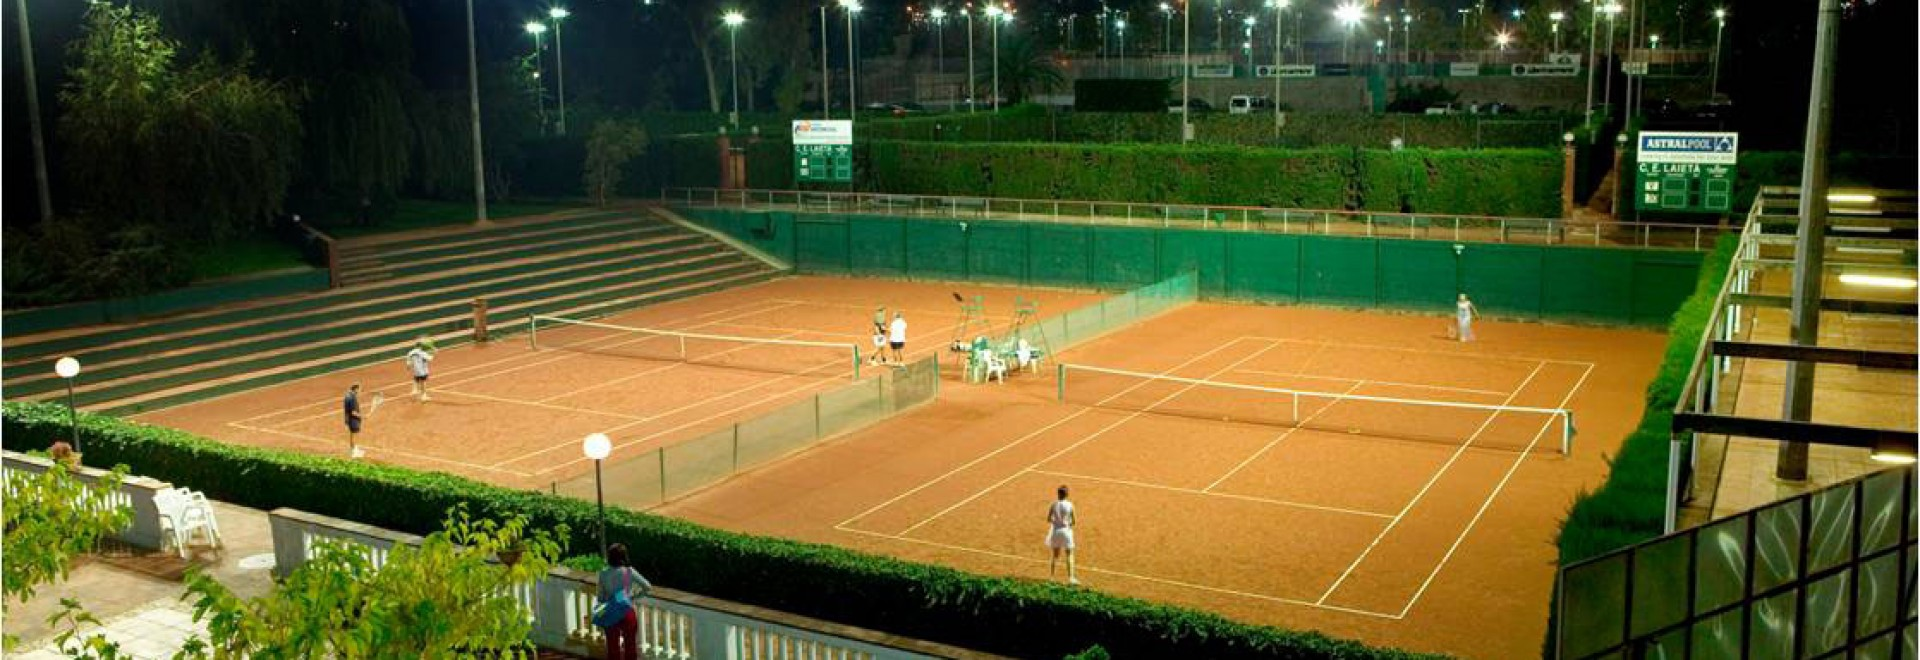 Costa del Tennis Adult Tennis Camp - Camp Nou, Barcelona